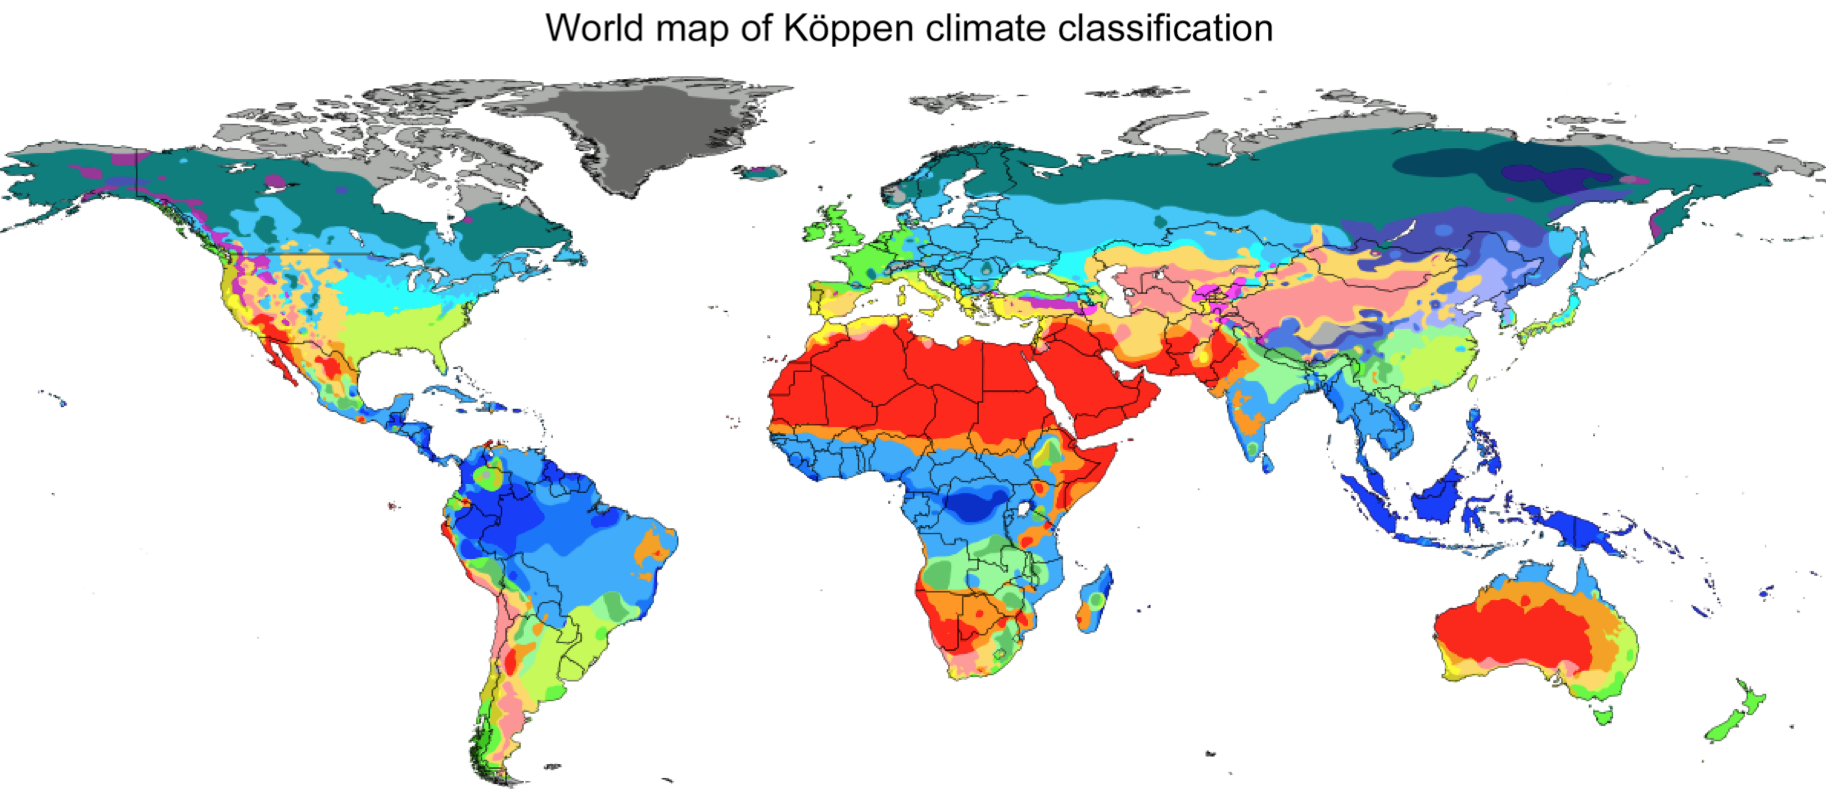 "The Koppen climate classification map shown above gives an overview of regions in the world where hot and dry climates are present: ""Dry-Desert-Hot summer"" climates (represented in red) and ""Dry-Steppe-Hot summer"" climates (represented in orange). Website: http://hanschen.org/koppen/"